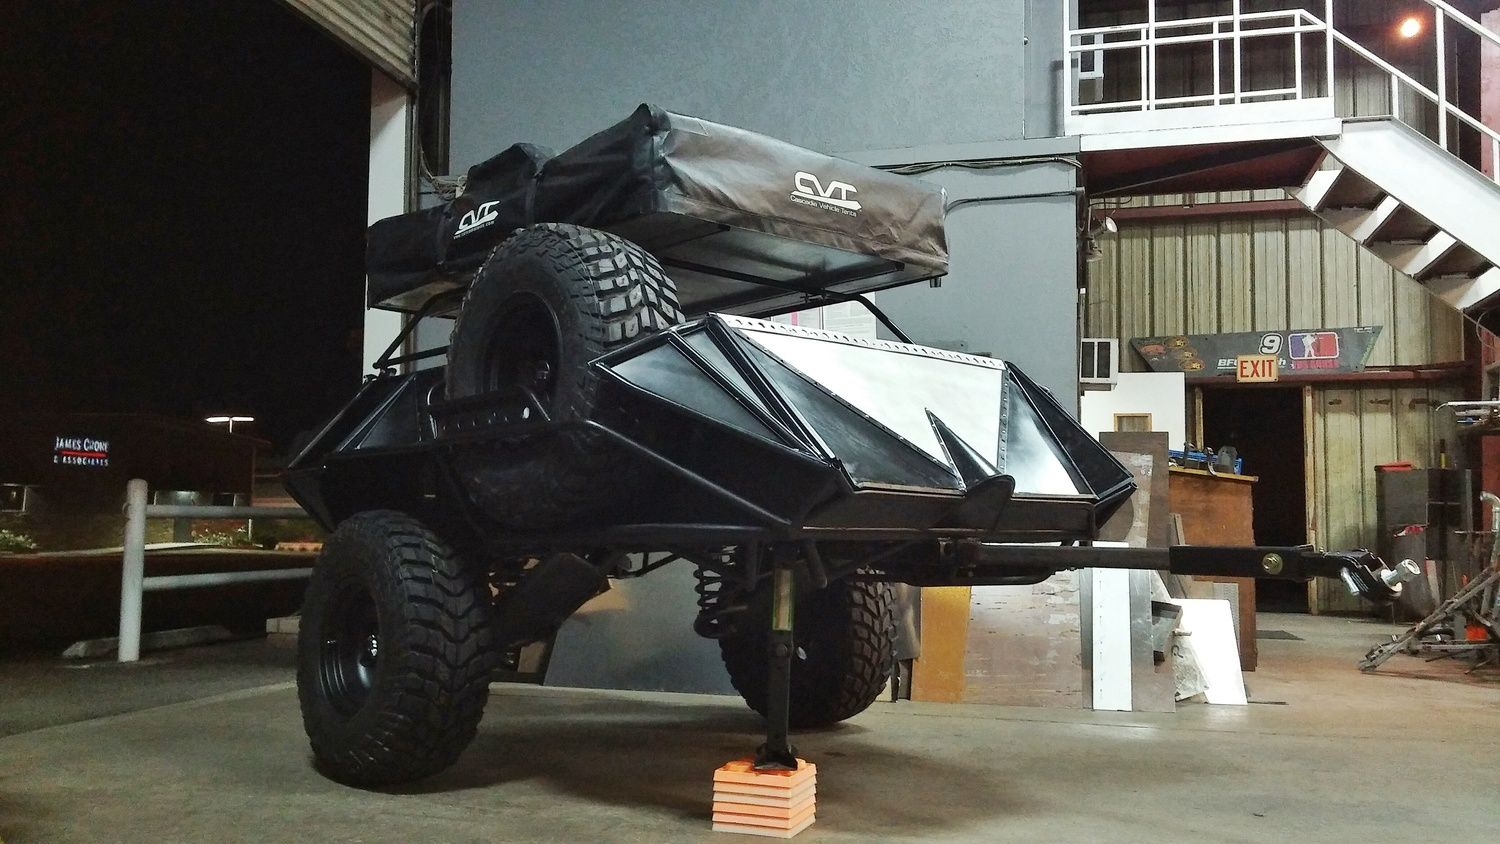 Yeti Built Off Road Trailer Small Pinterest Lengthening Car Page 2 Pirate4x4com 4x4 And Offroad Build